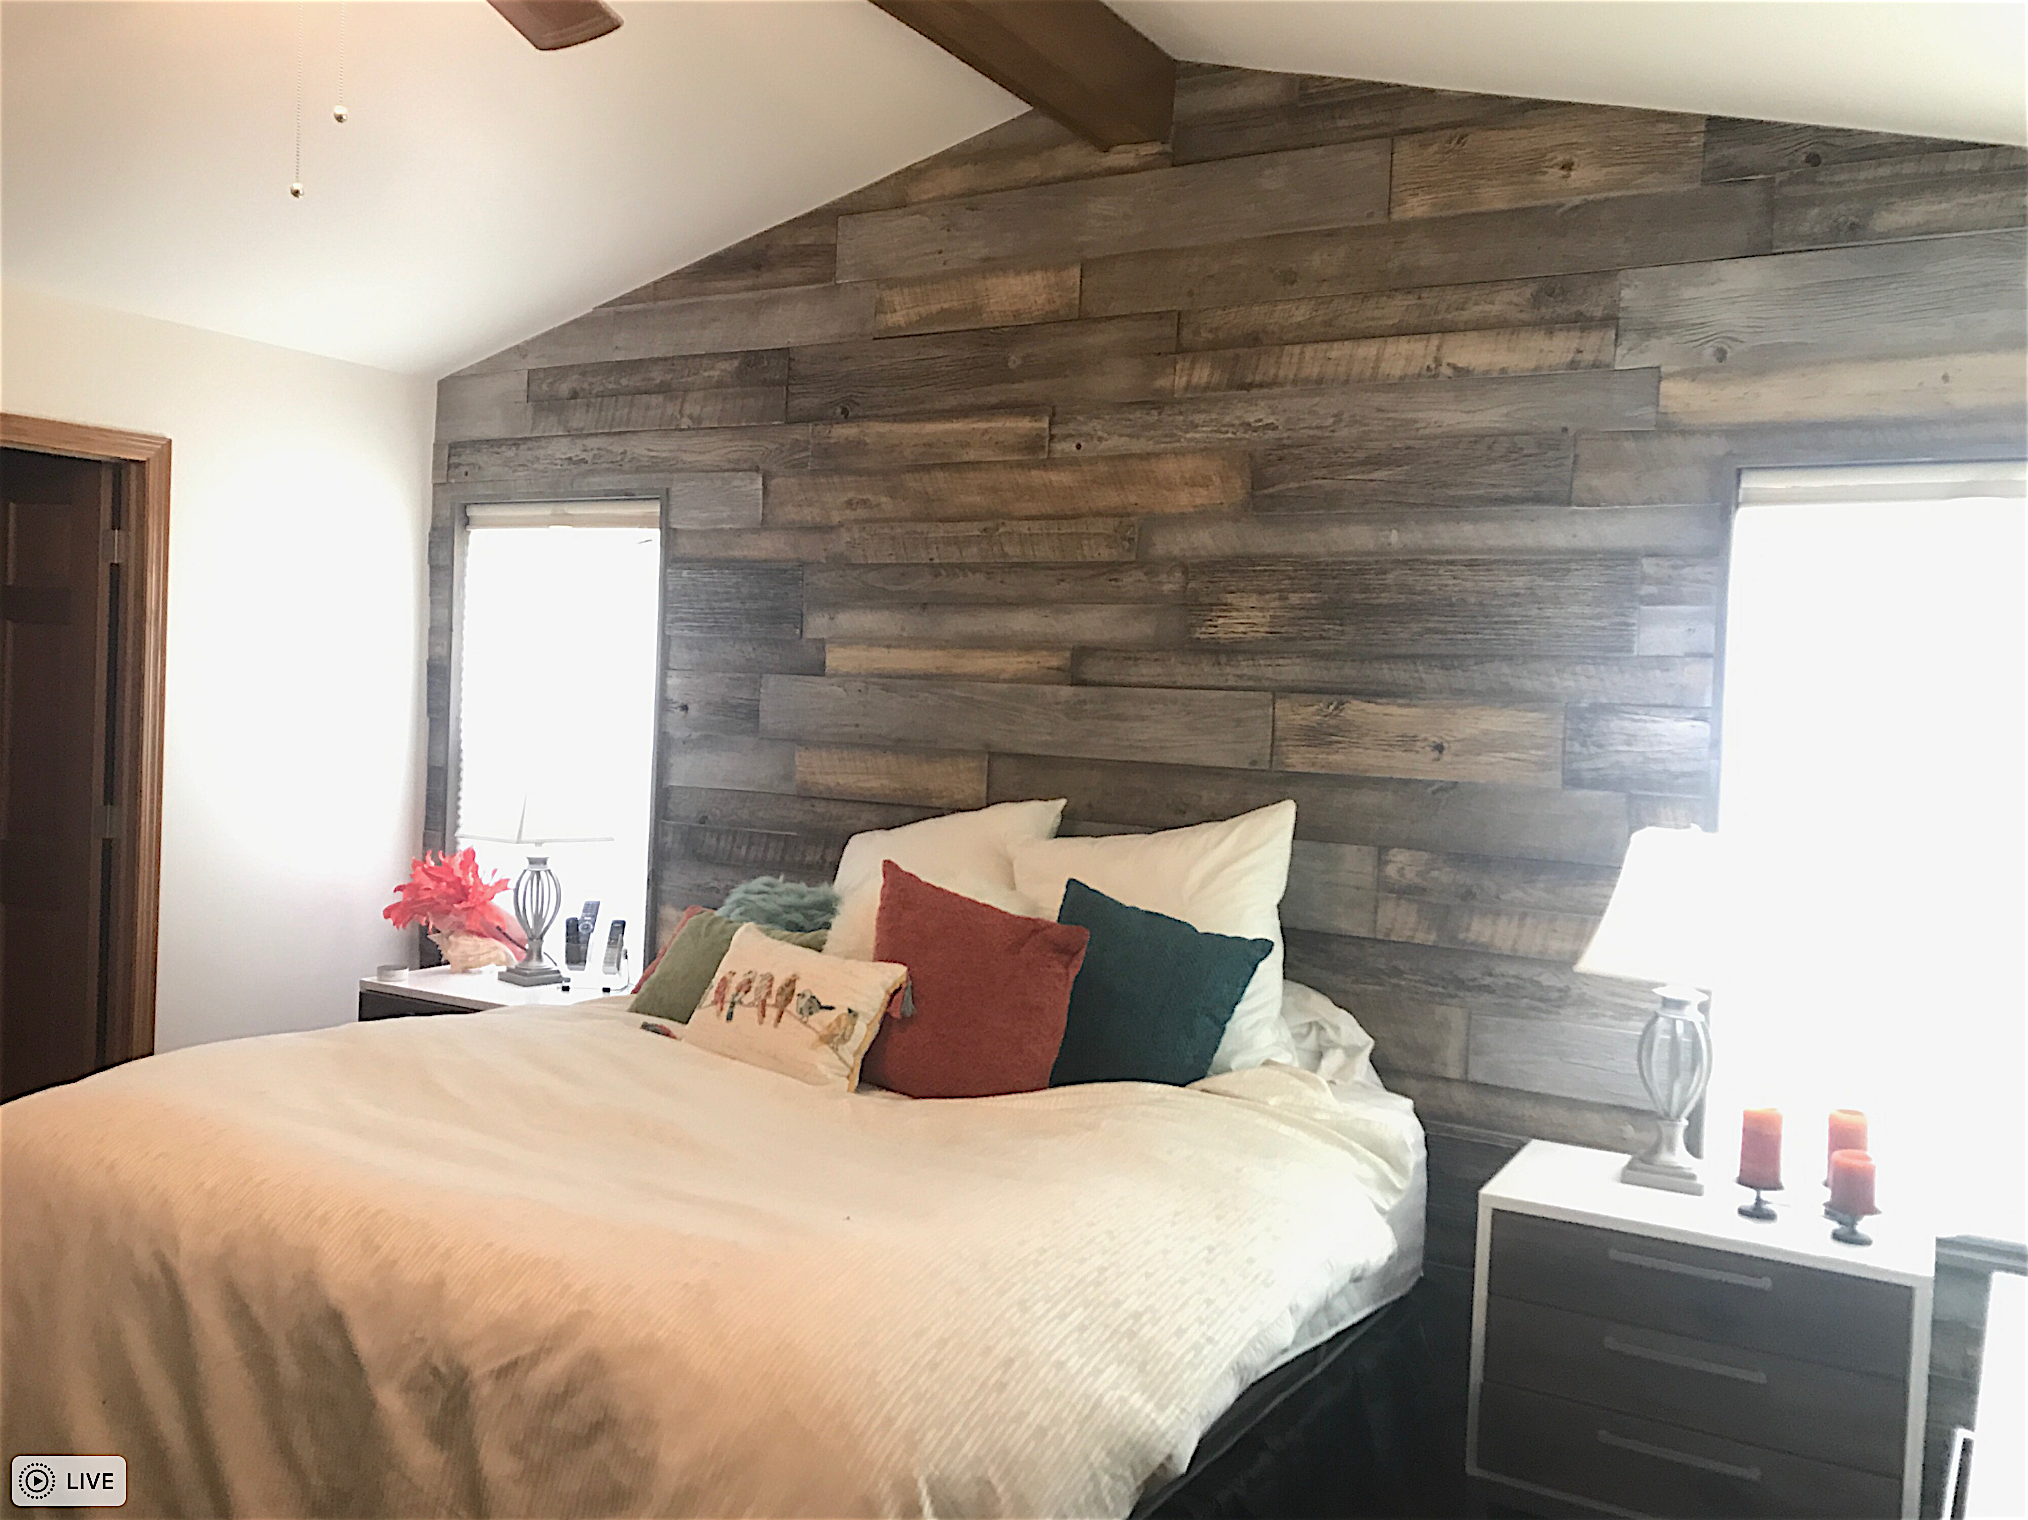 design hampton in wine abc soak p reclaimed x barn wood wne boards barns paneling panel rustic embossed wall burgundy red faux